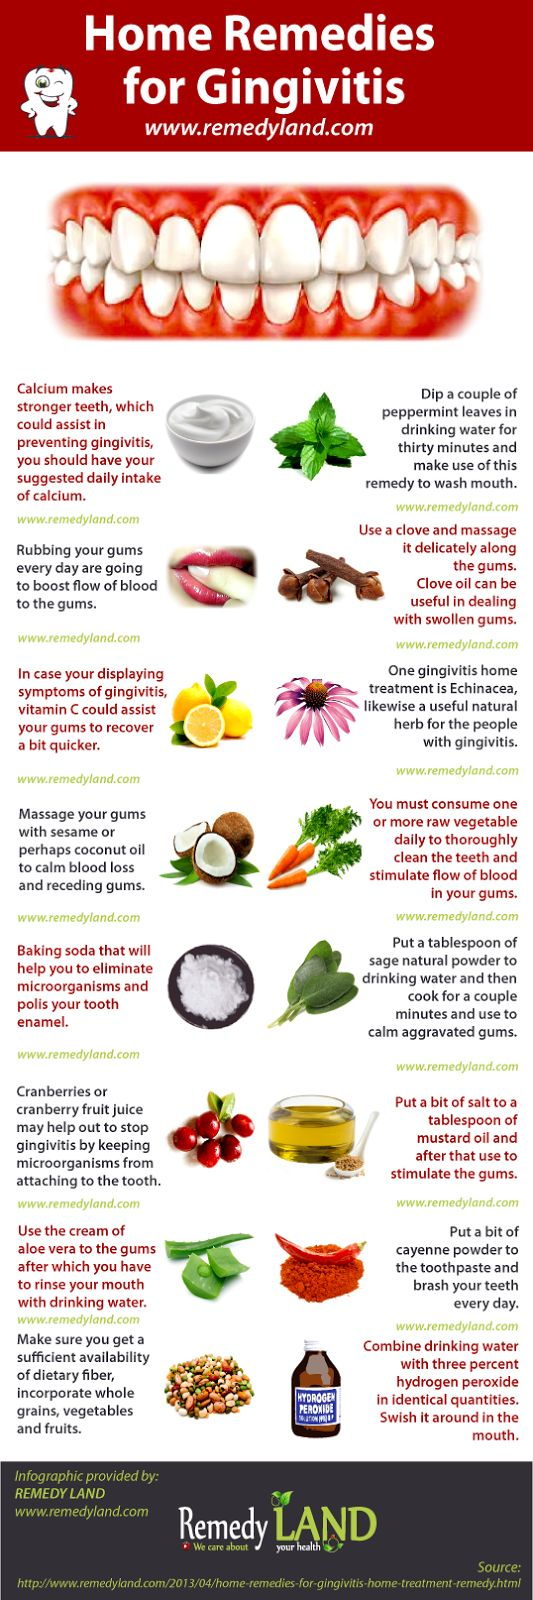 Gingivitis home remedies #gingivitis #remedies